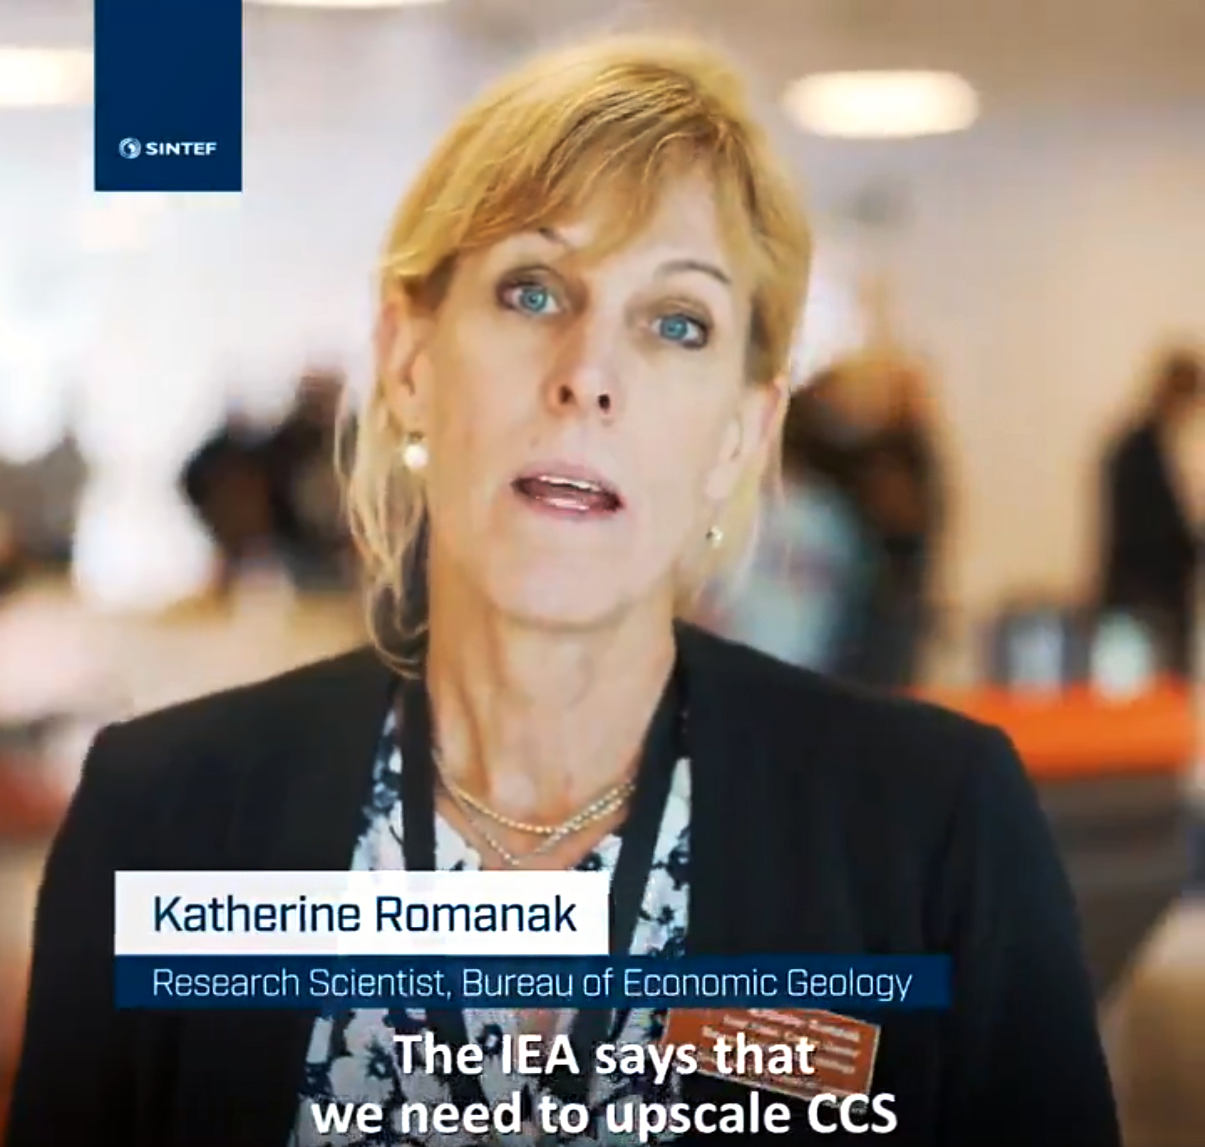 A screenshot from the video showing Katherine speaking to the camera